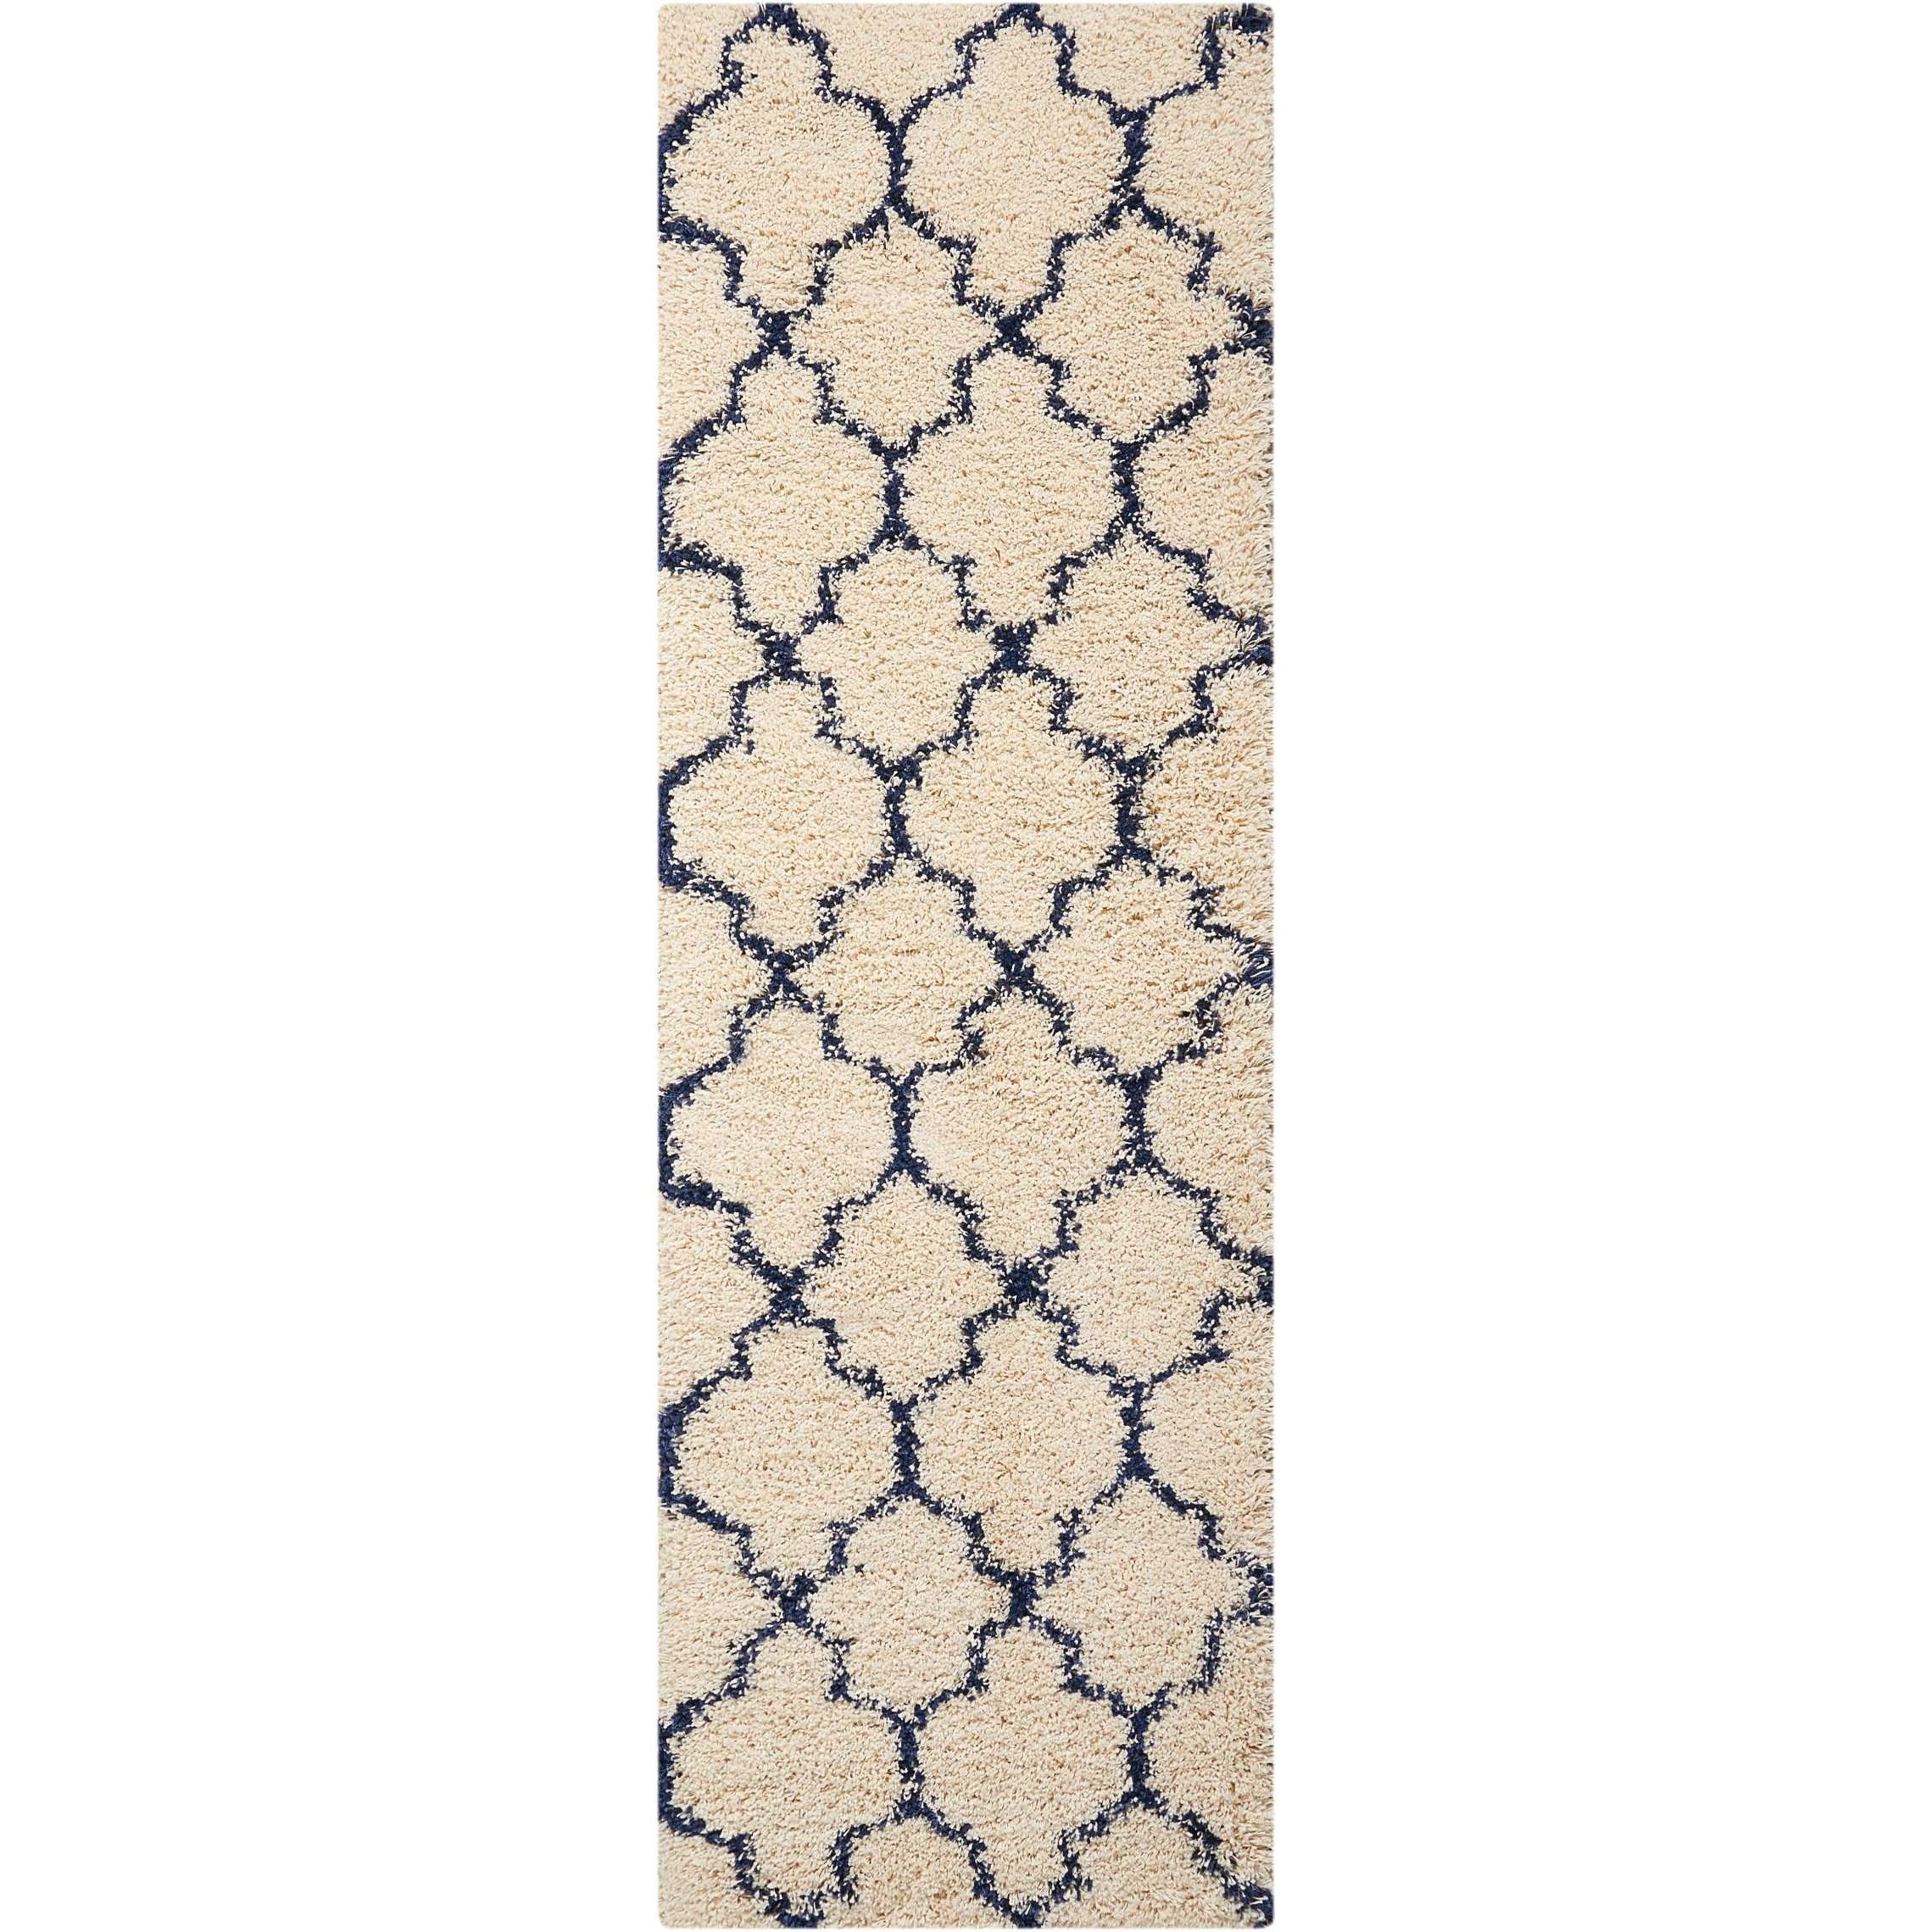 "Amore 2'2"" x 7'6"" Ivory/Blue Runner Rug by Nourison at Home Collections Furniture"